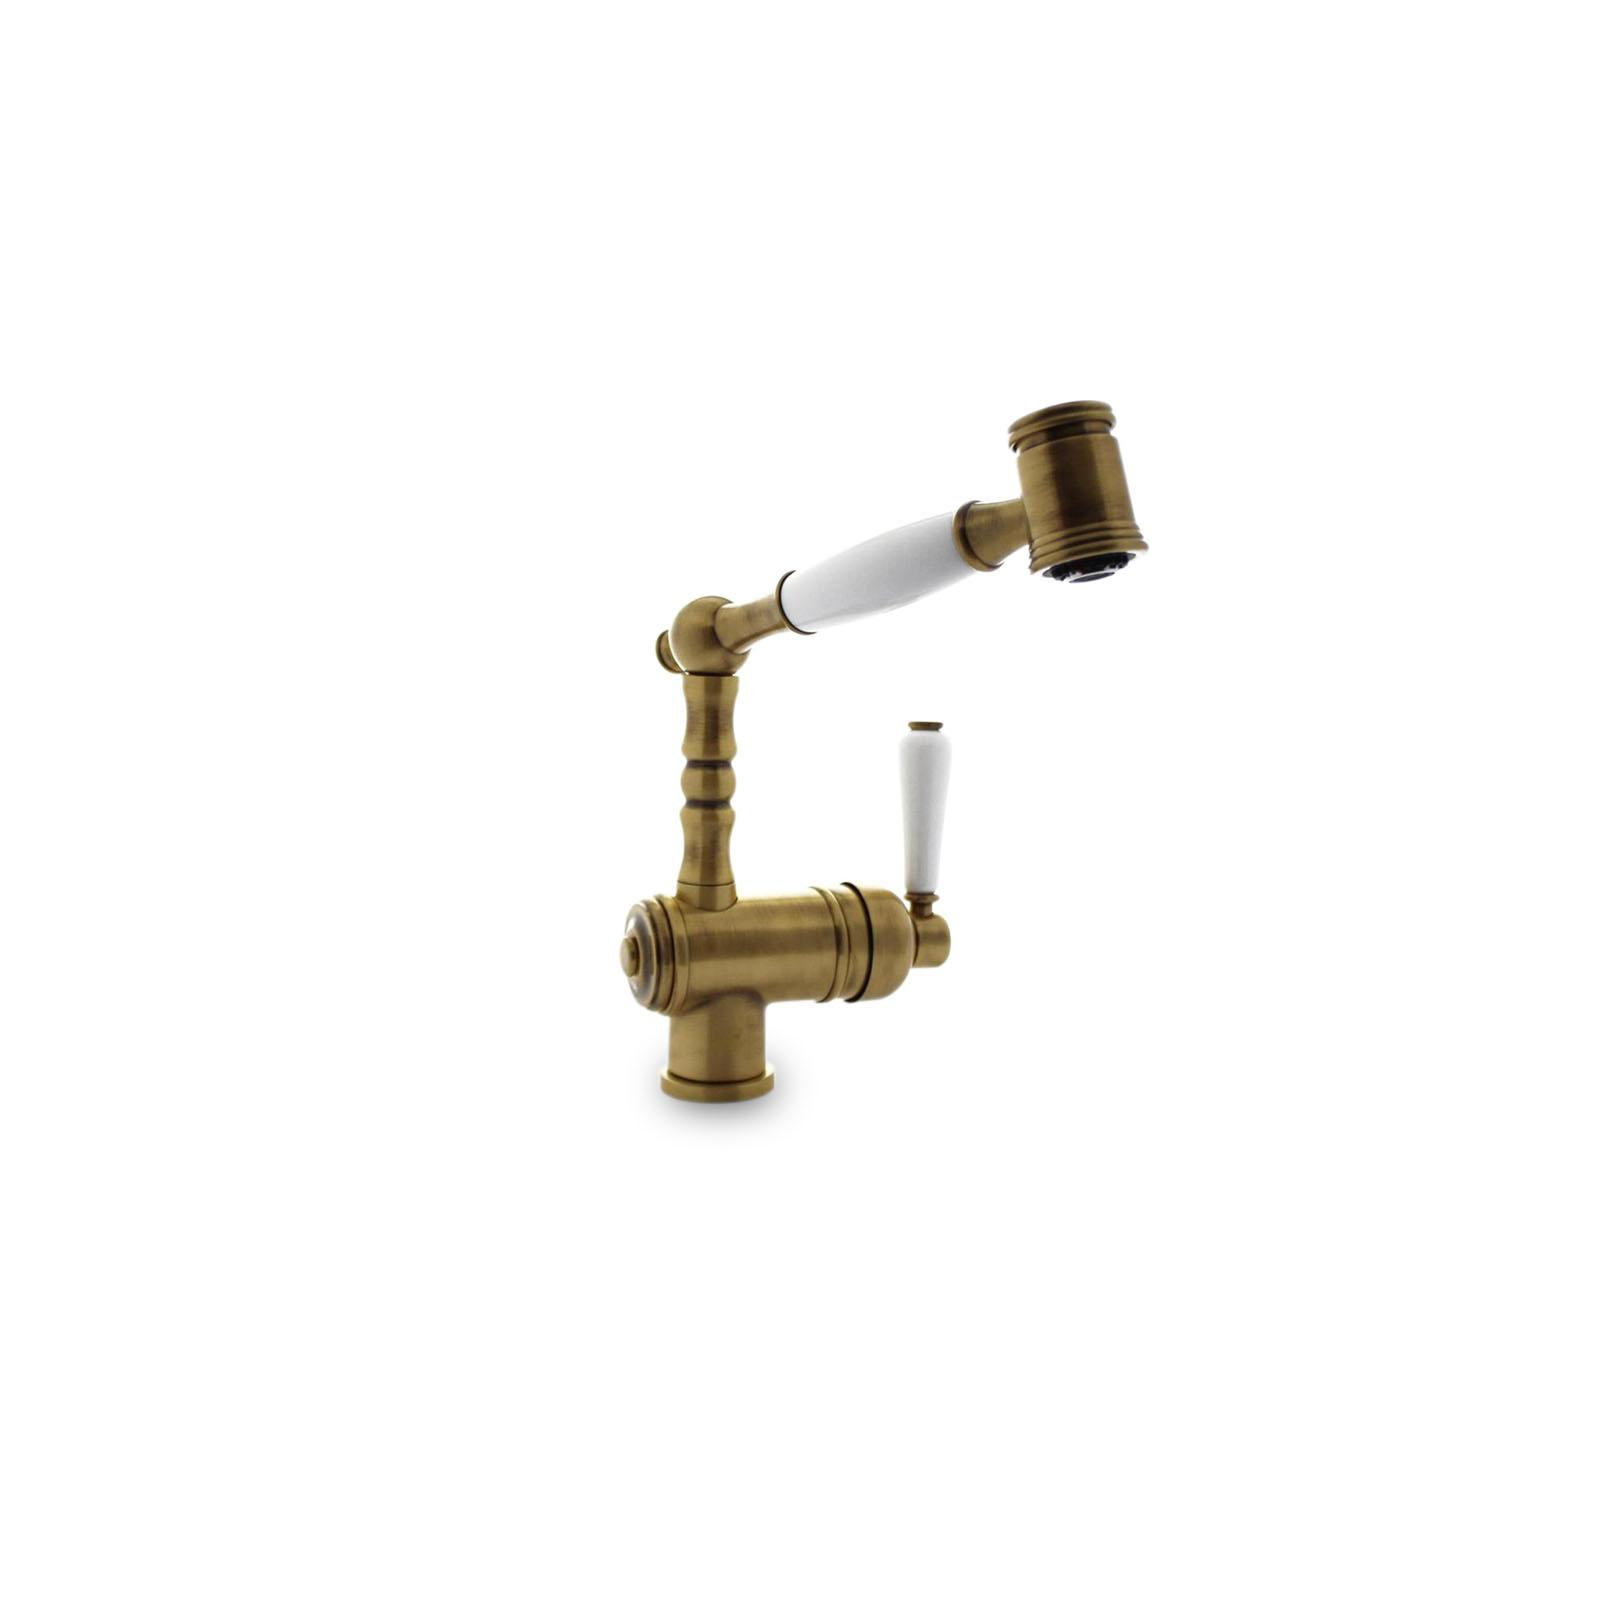 High-quality single lever tap Louise - pull out spray - Bronze - ambience 3